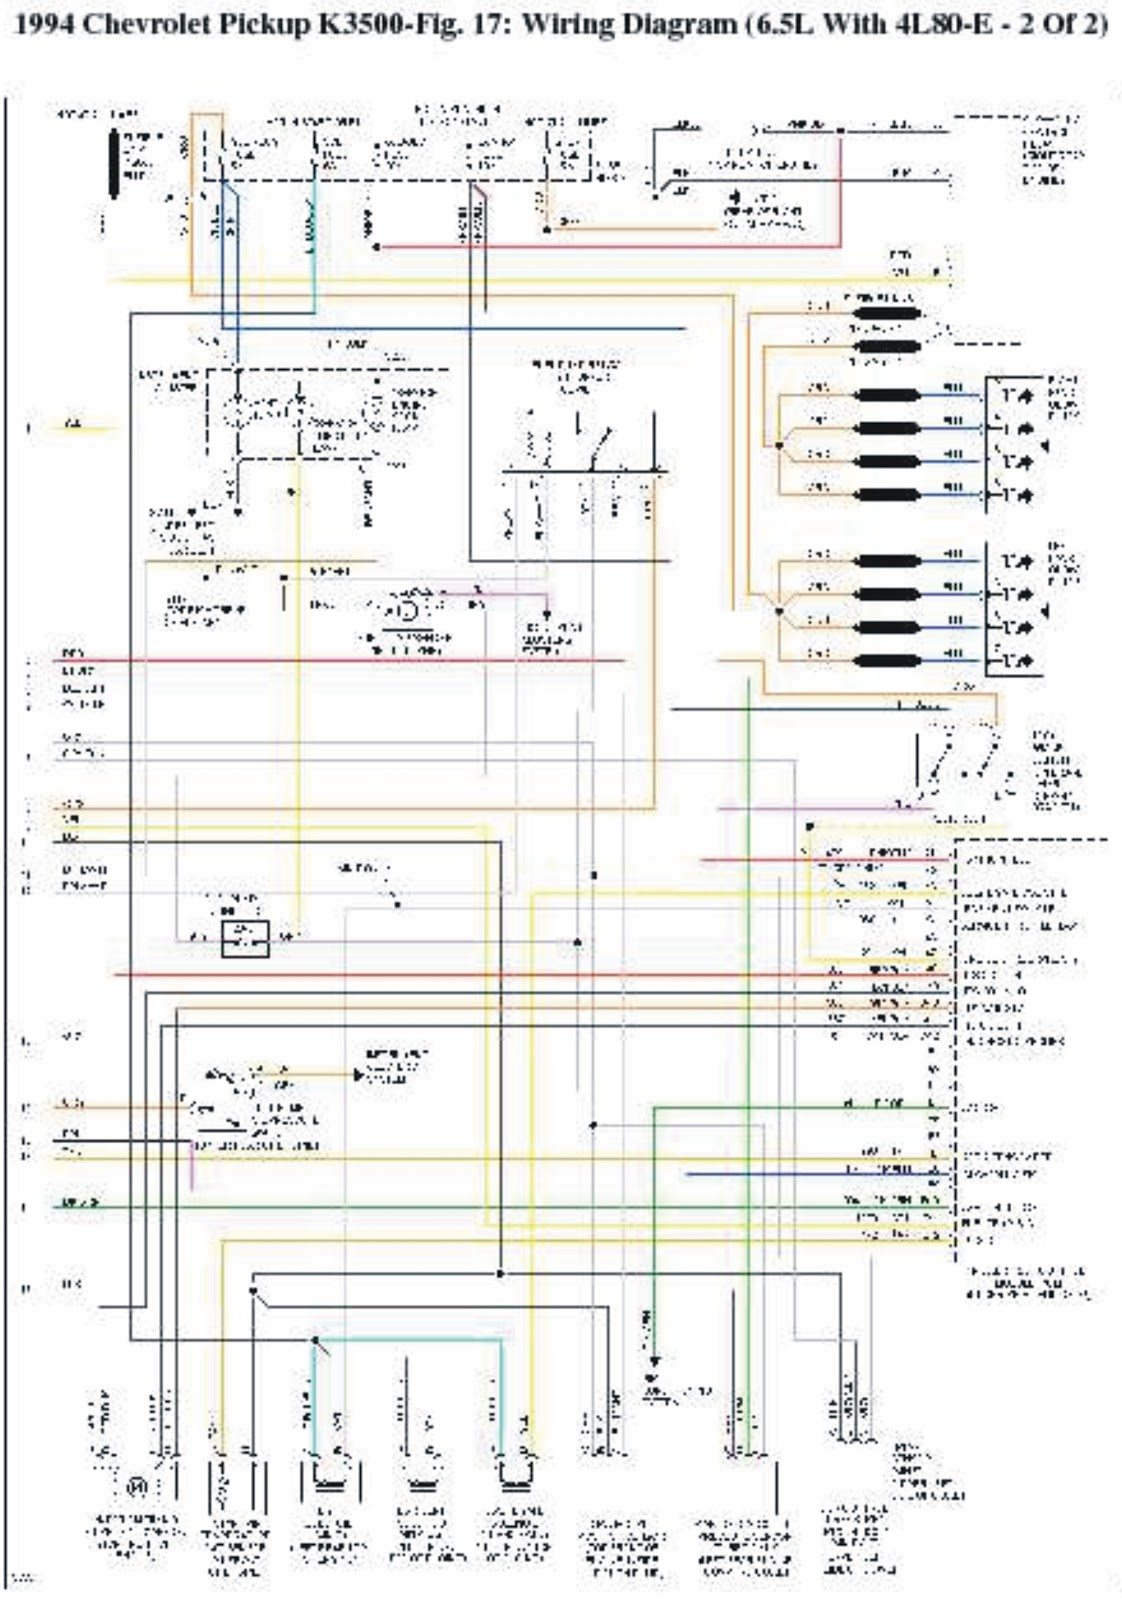 1976 Gmc Wiring Diagram